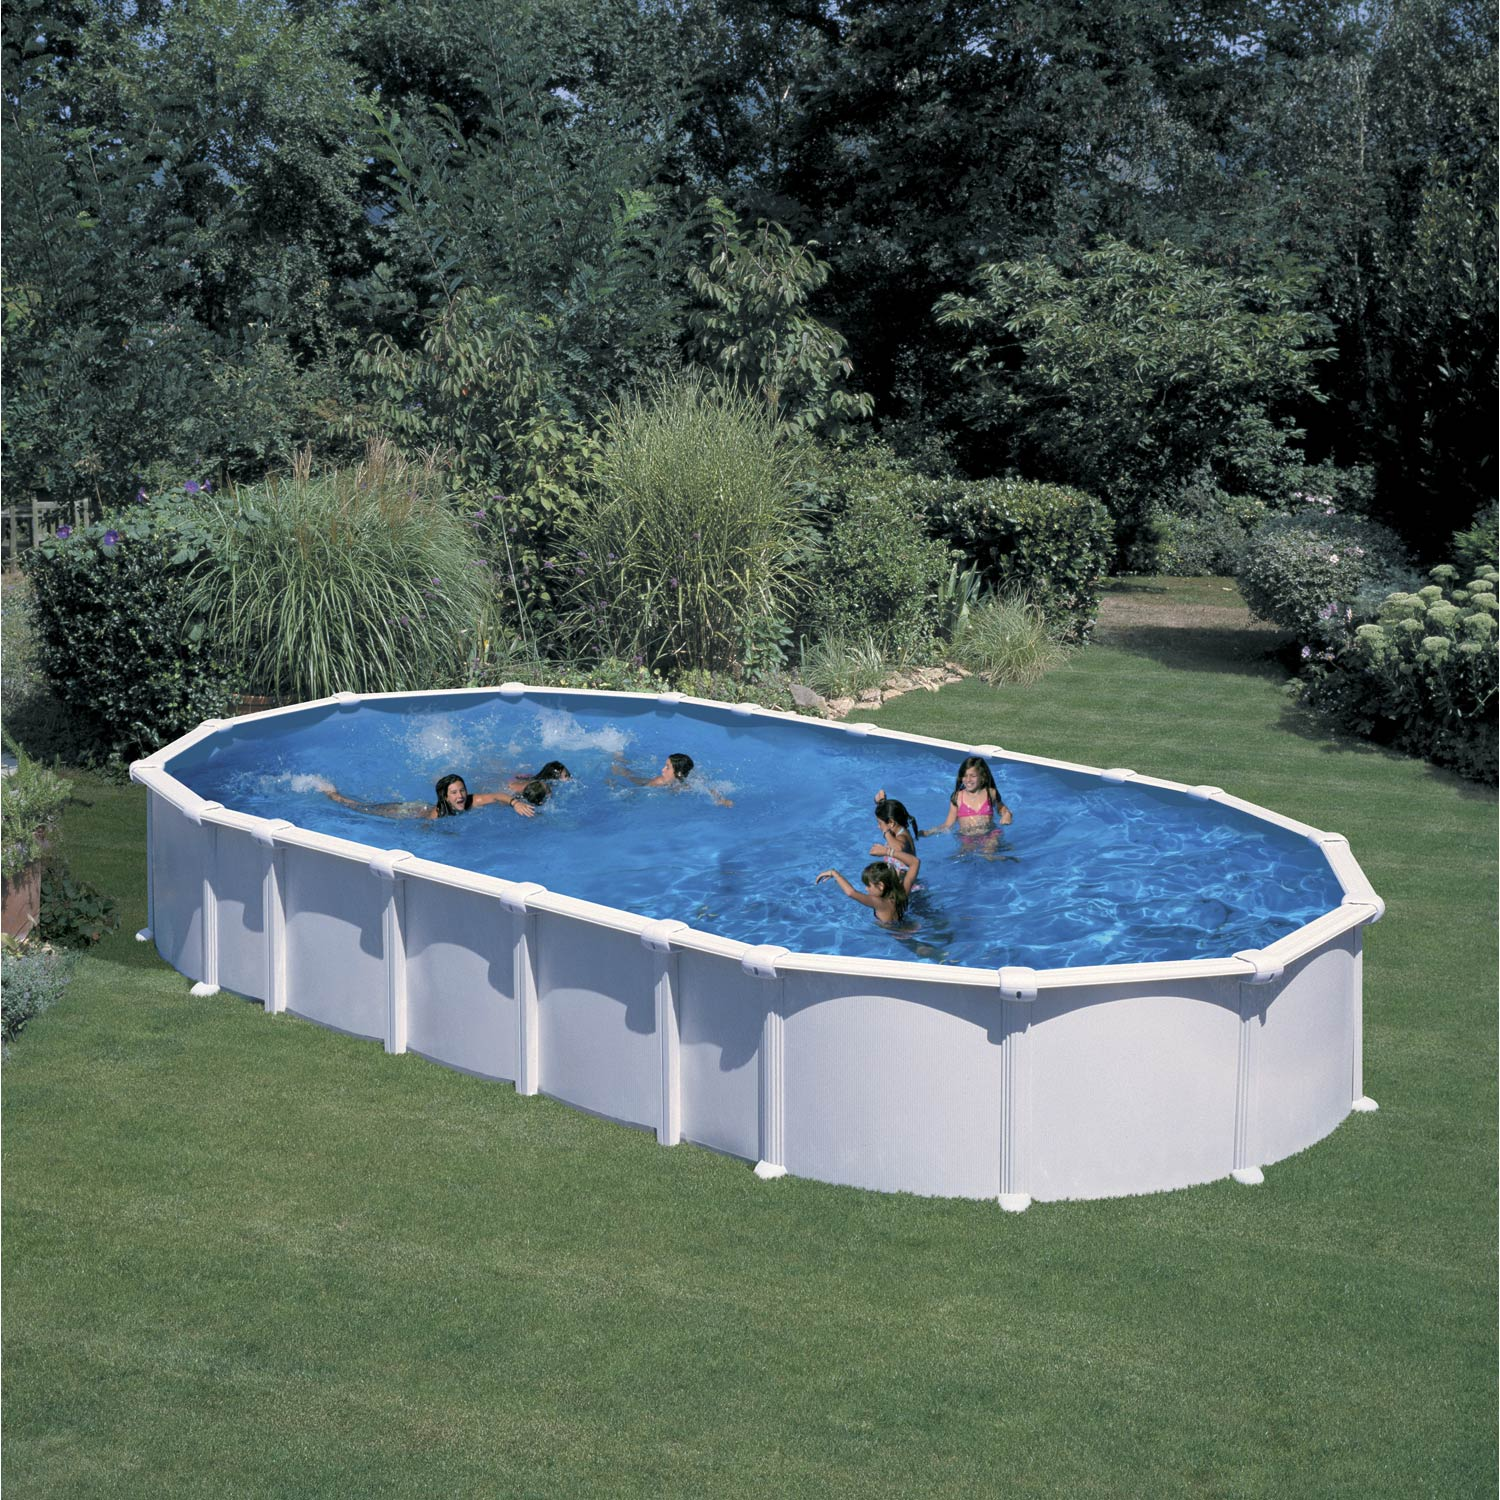 Piscine hors sol acier san clara l 6 4 x l x h for Piscine en kit enterree